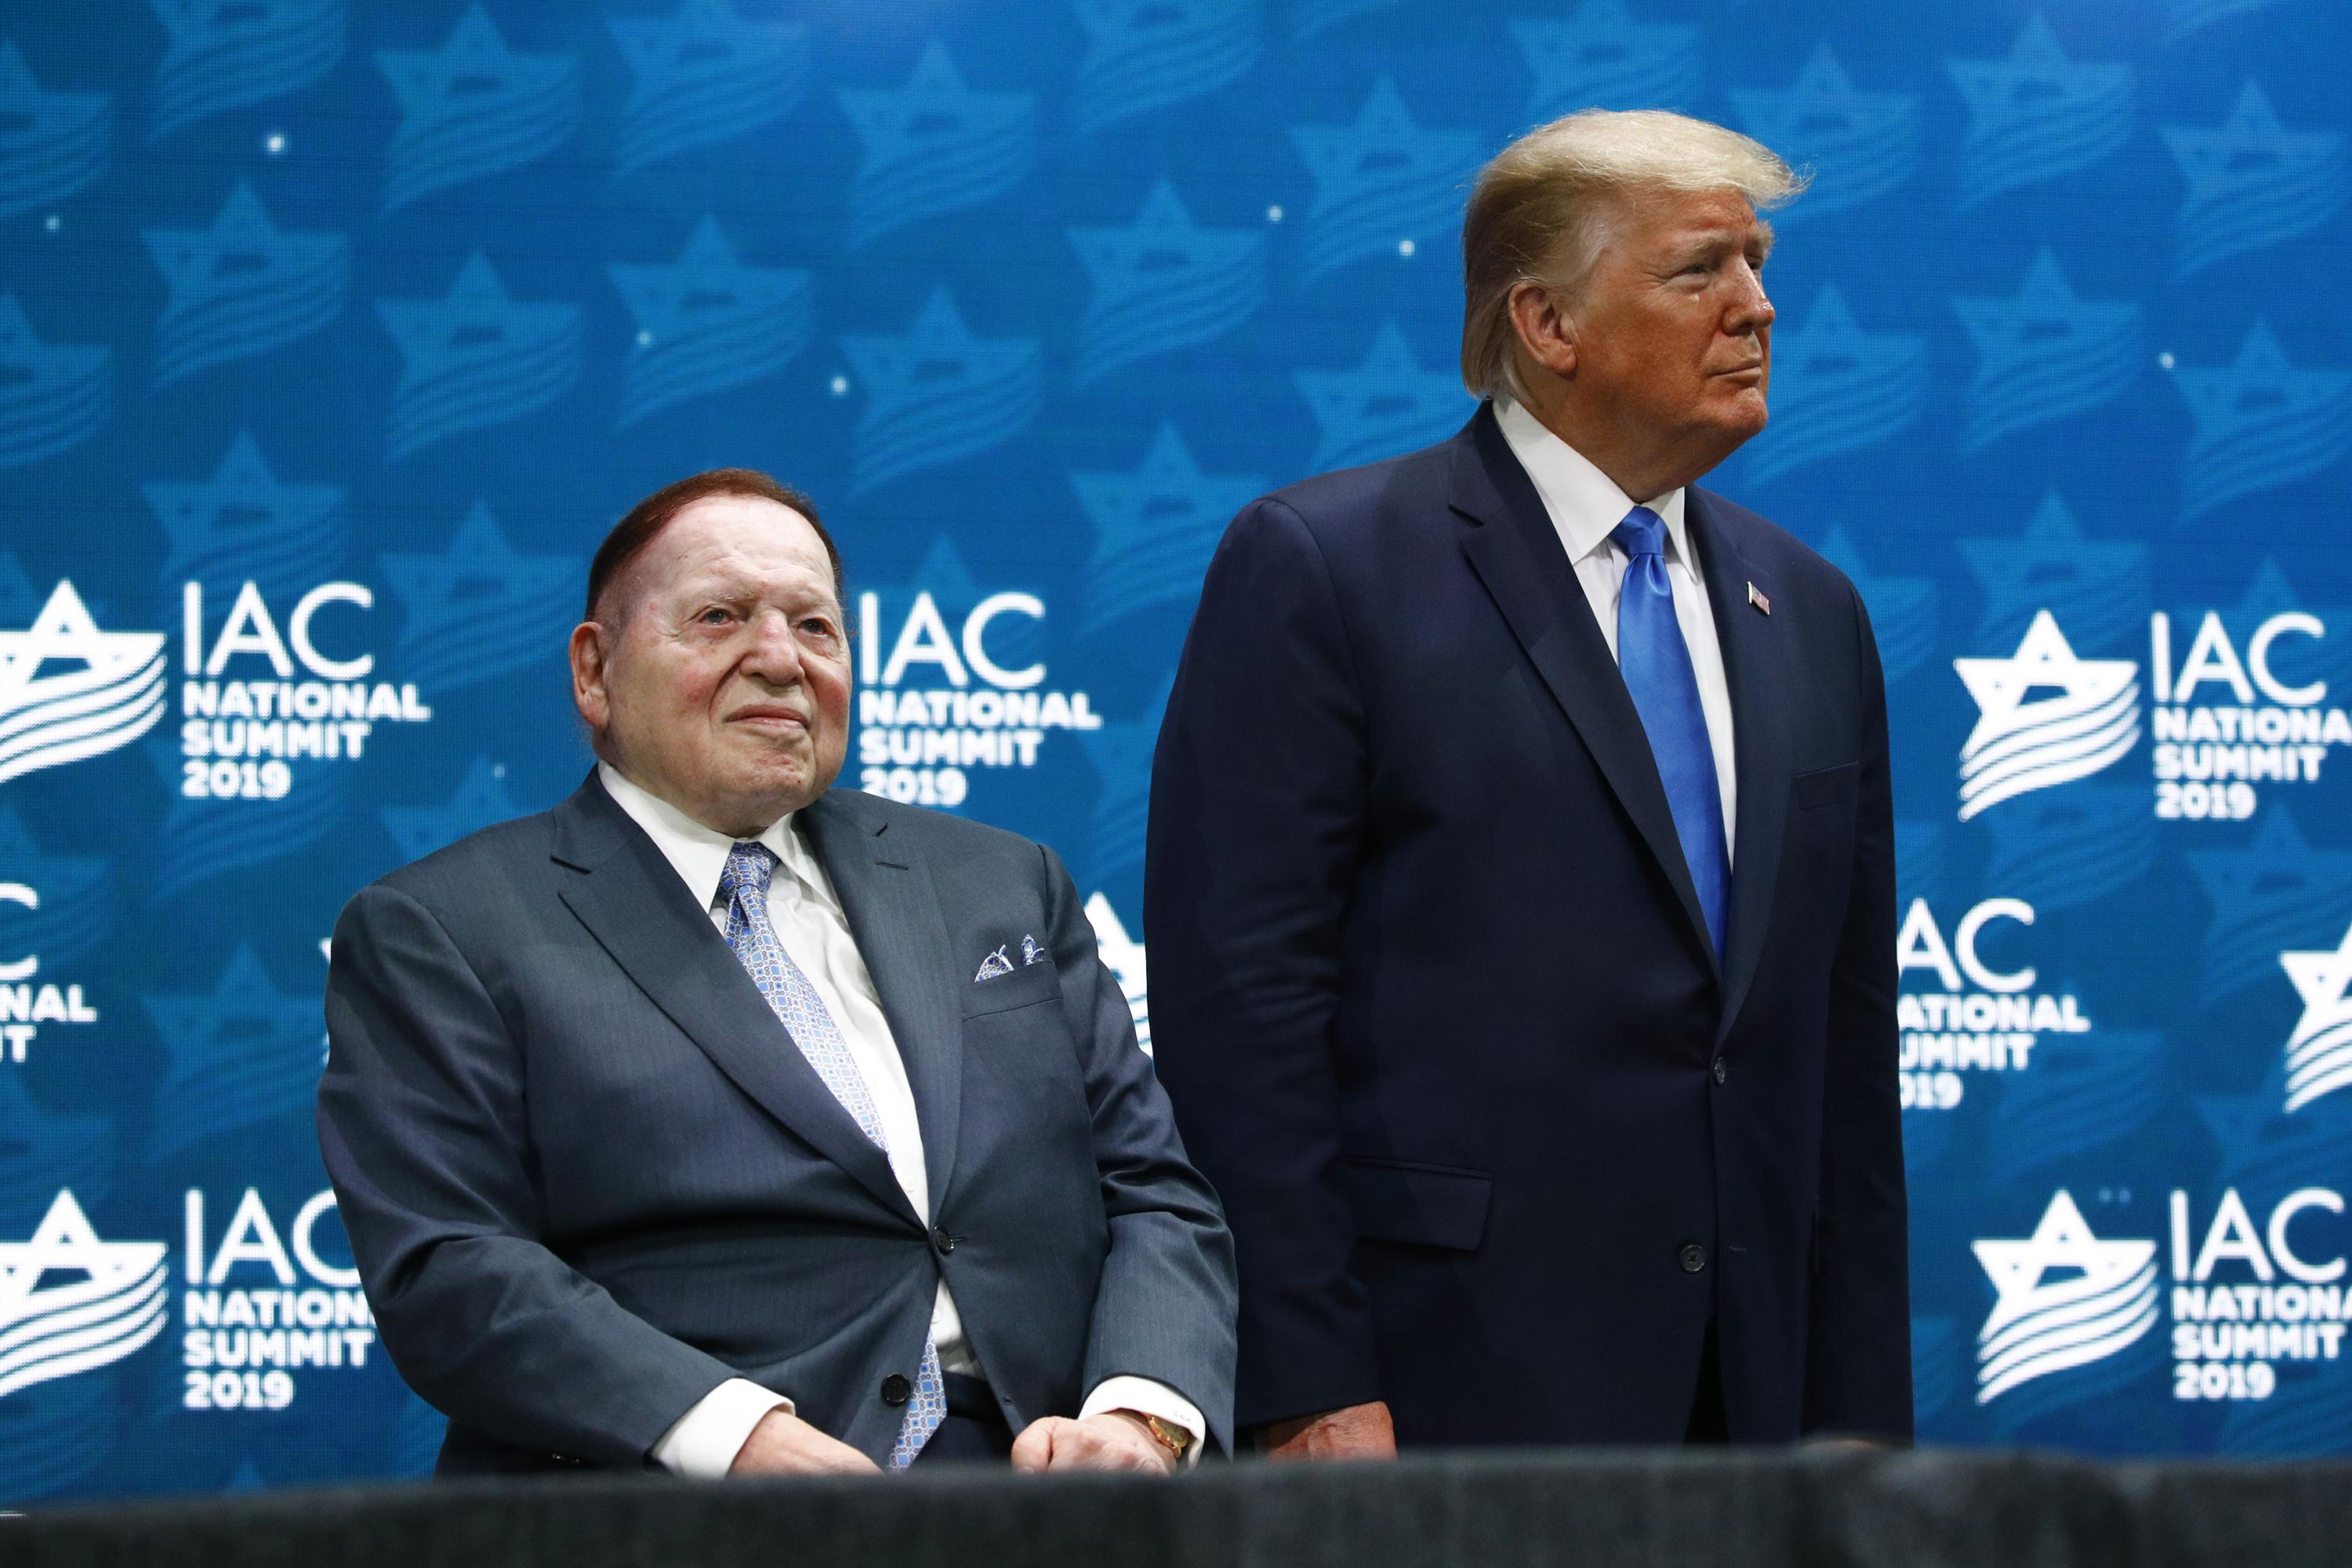 Trump Pence and Reid react to death of Sheldon Adelson – Associated Press